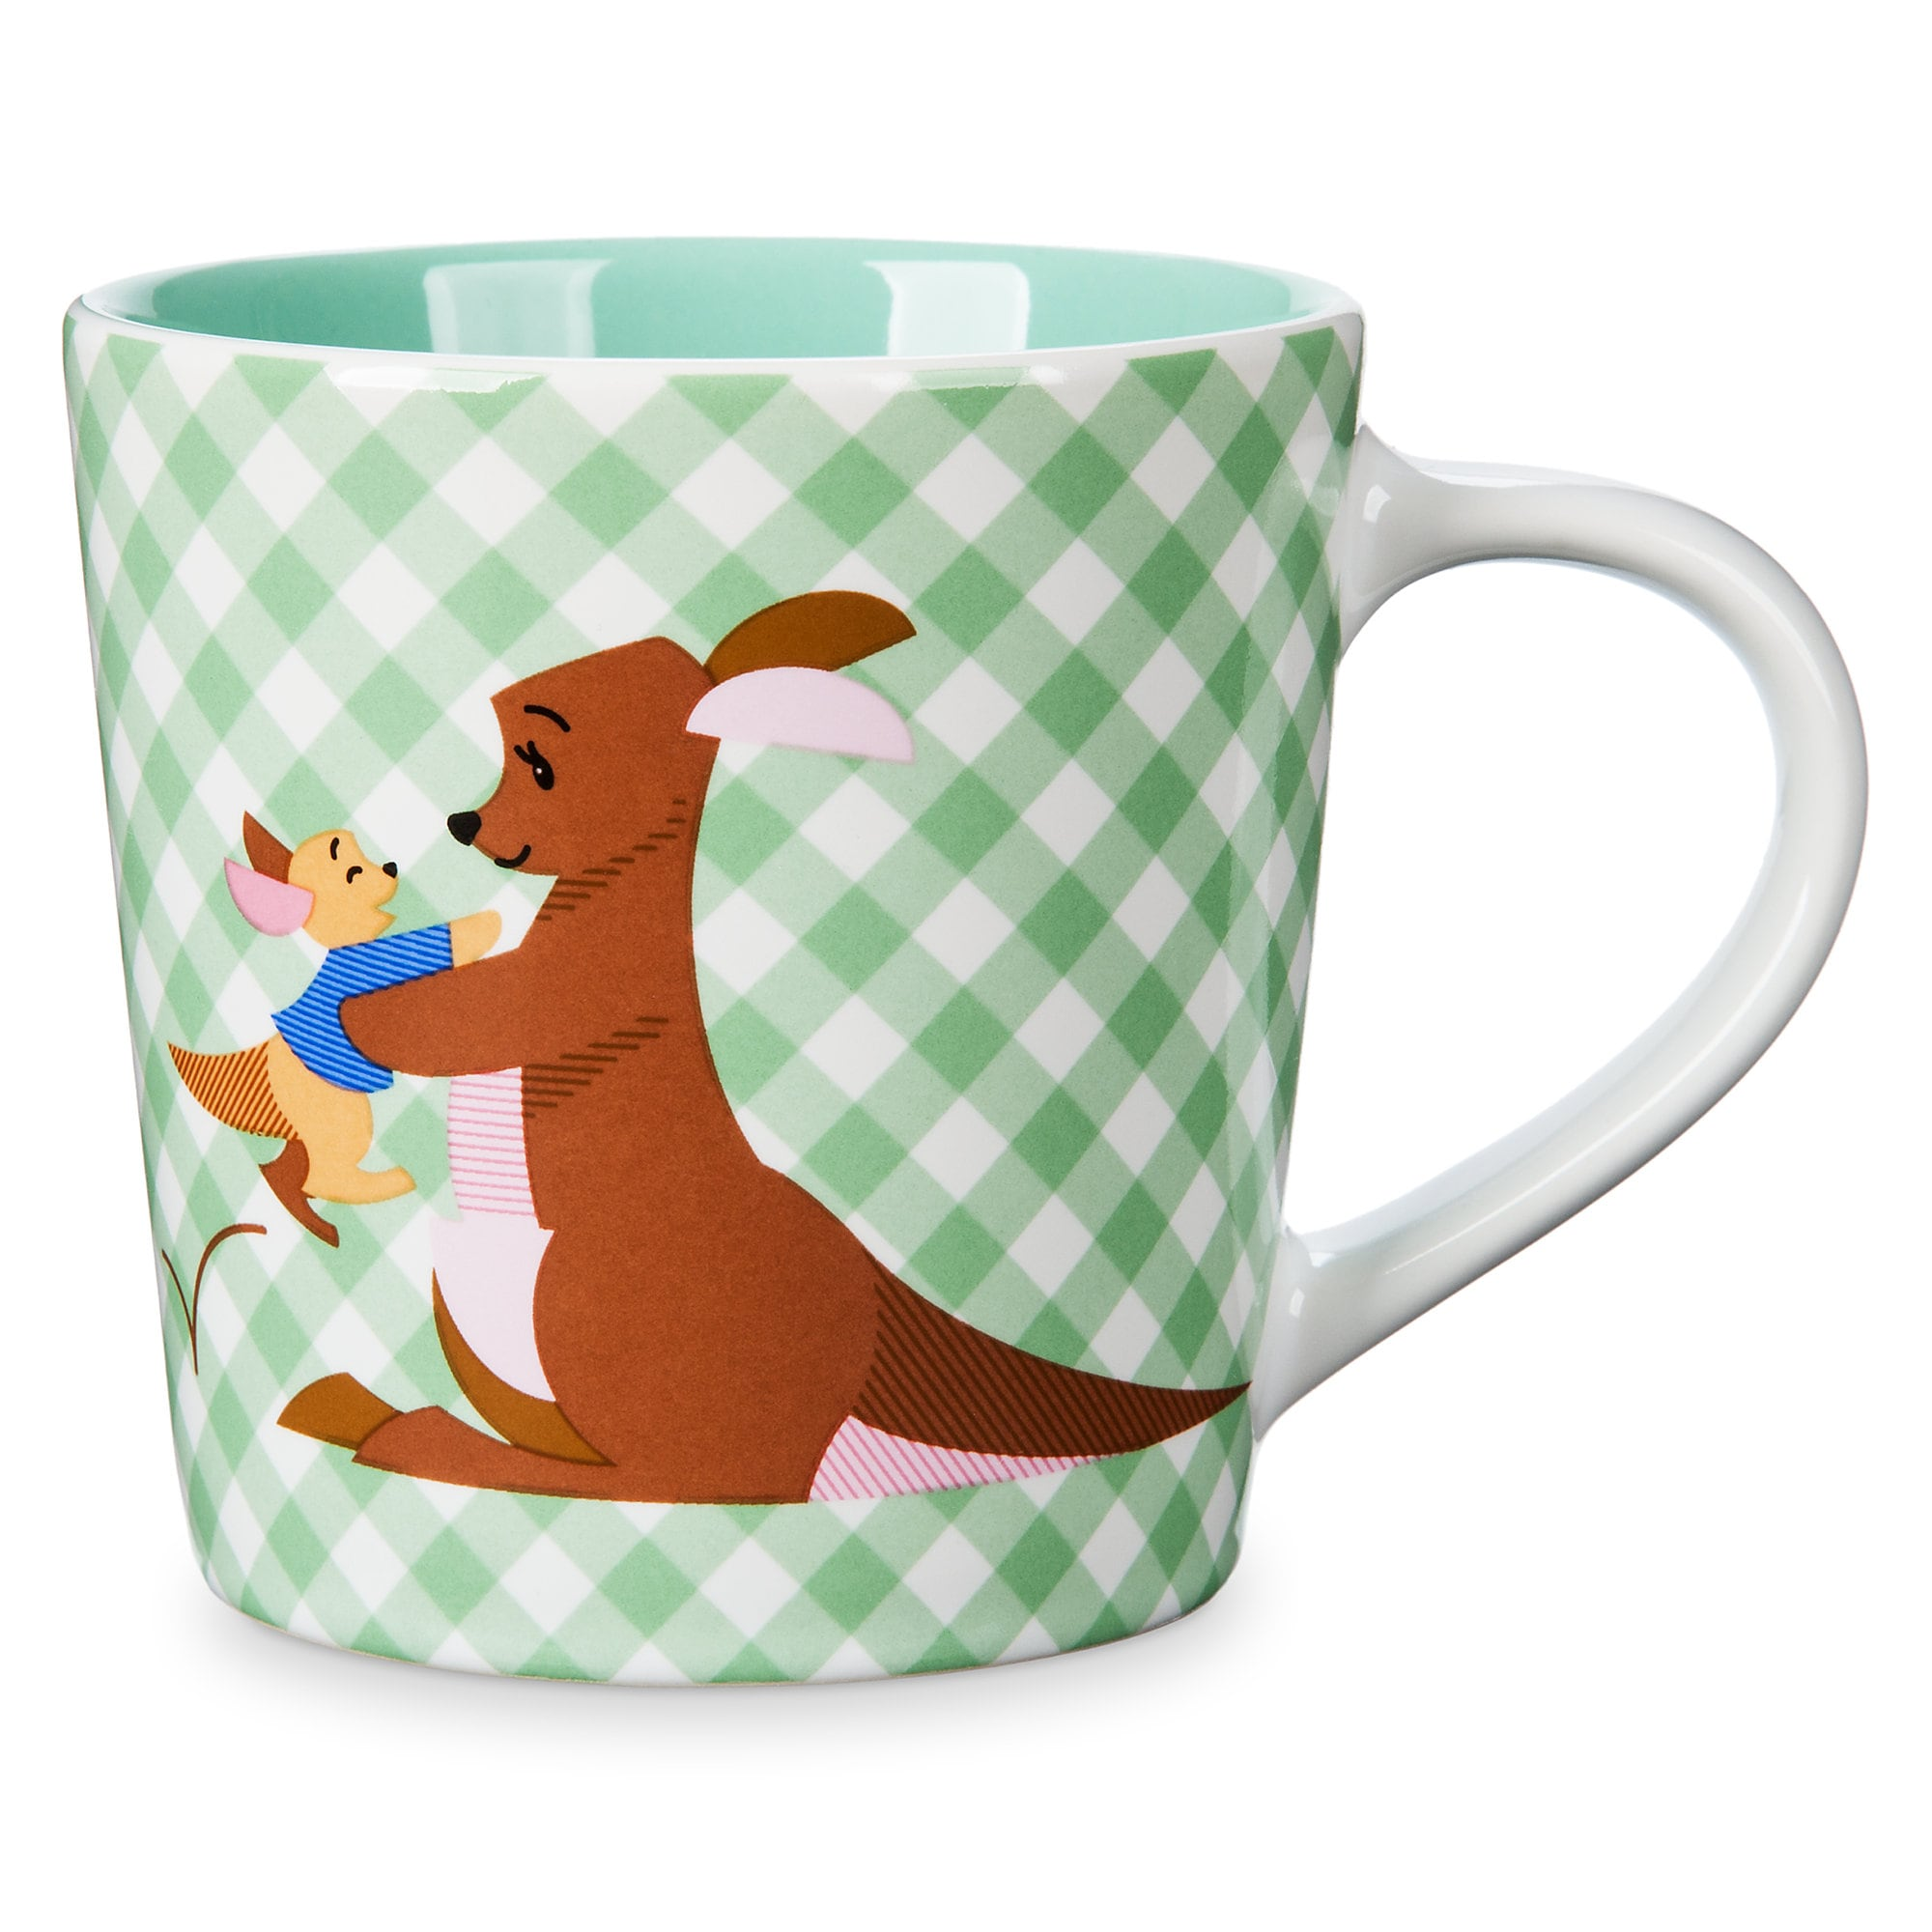 Kanga and Roo Checkered Mug